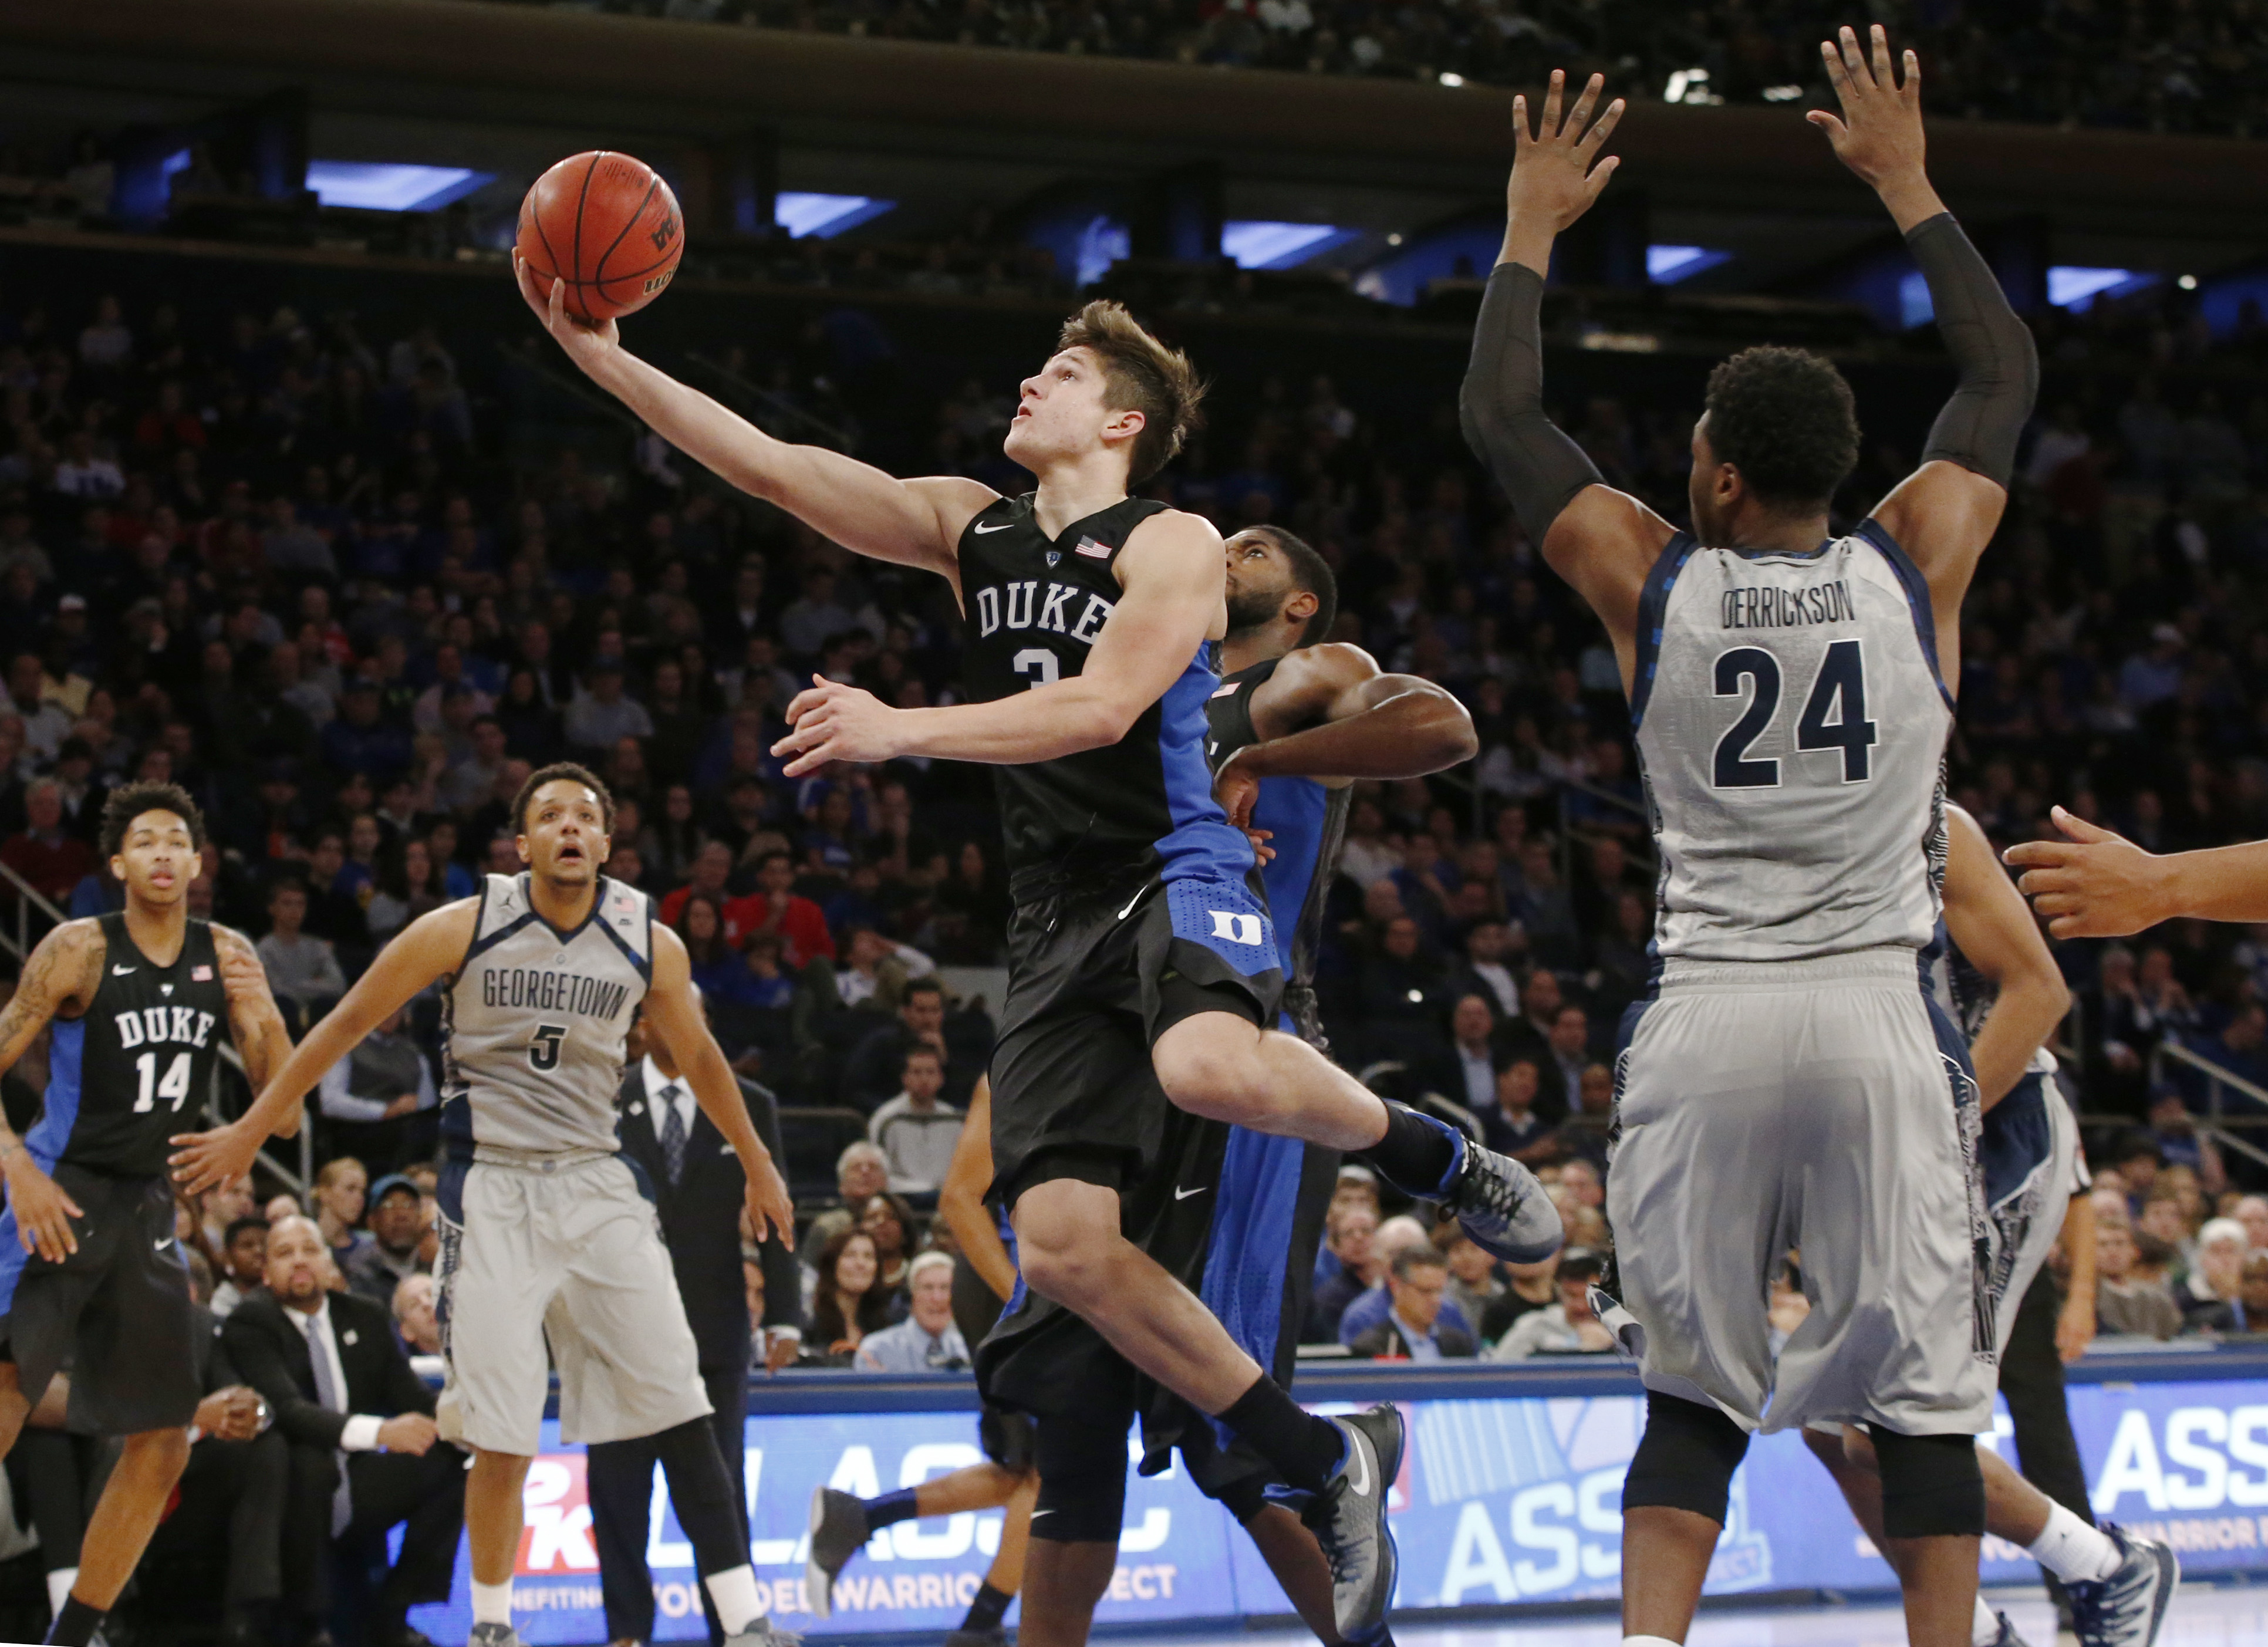 Duke guard Grayson Allen (3) goes up for a layup as Georgetown forward Reggie Cameron (5) watches from the floor in the first half of an NCAA college basketball game at Madison Square Garden in New York, Sunday, Nov. 22, 2015. (AP Photo/Kathy Willens)